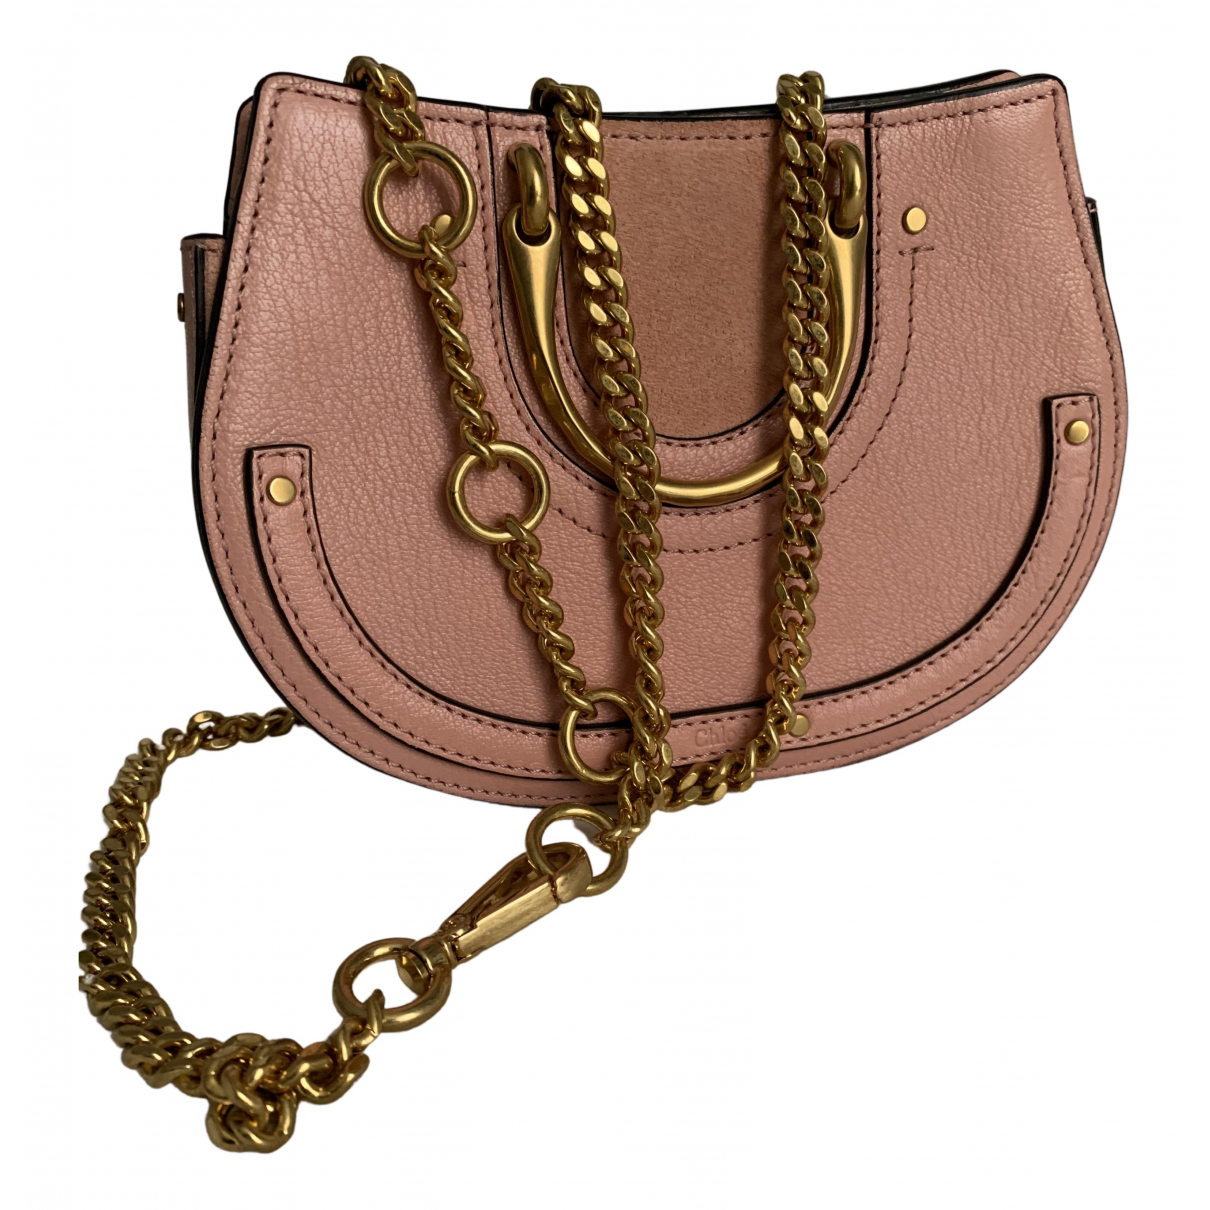 Chloé Bracelet Nile Pink Leather handbag for Women N